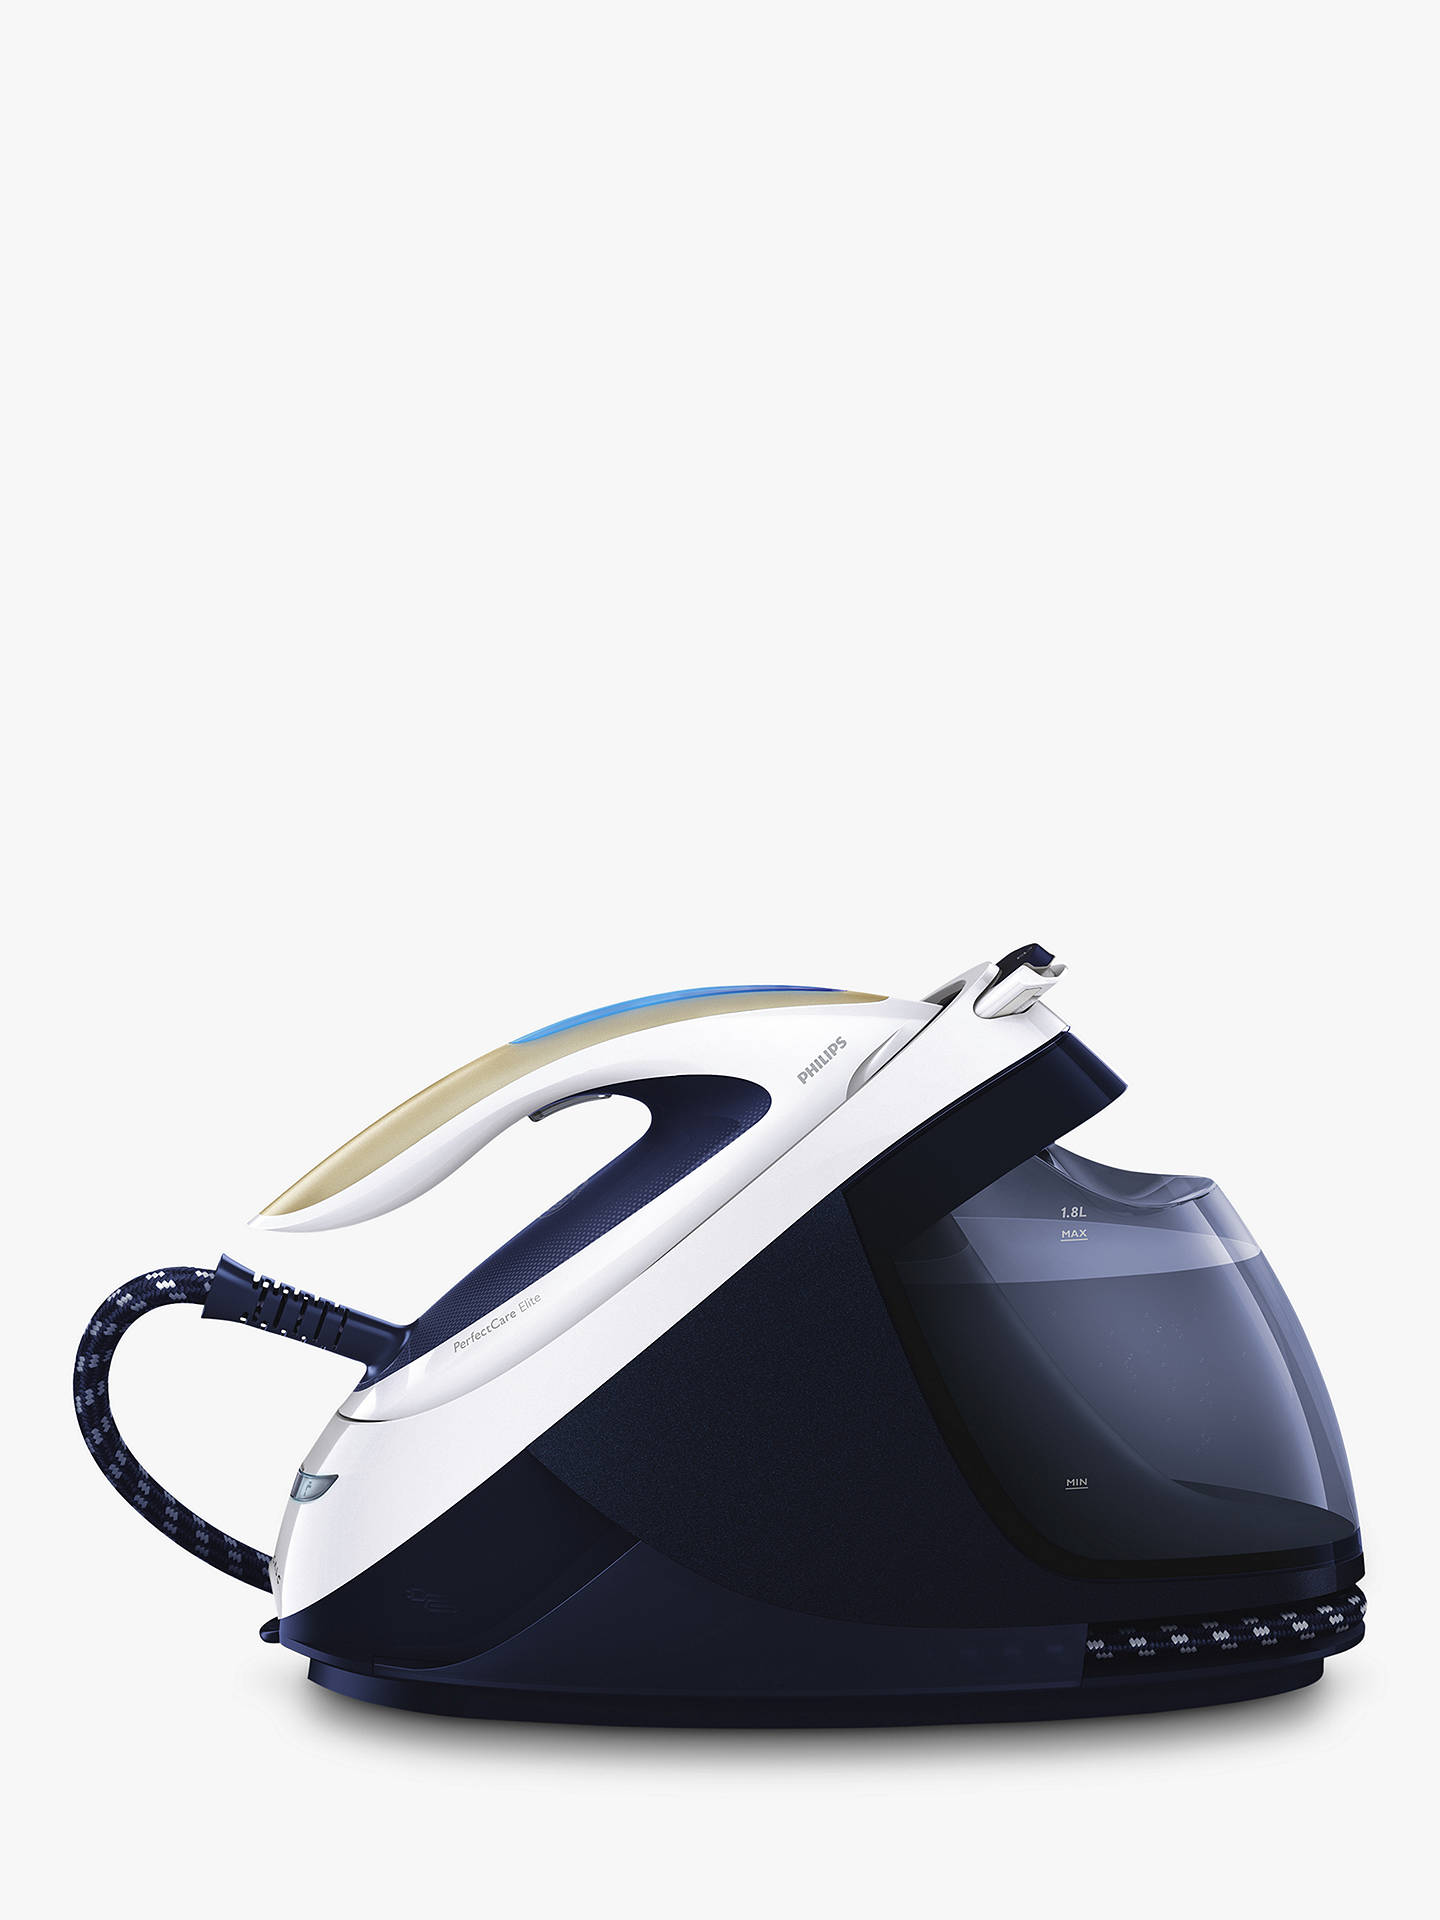 Buy Philips GC9635/26 PerfectCare Elite Steam Generator Iron, Blue Online at johnlewis.com